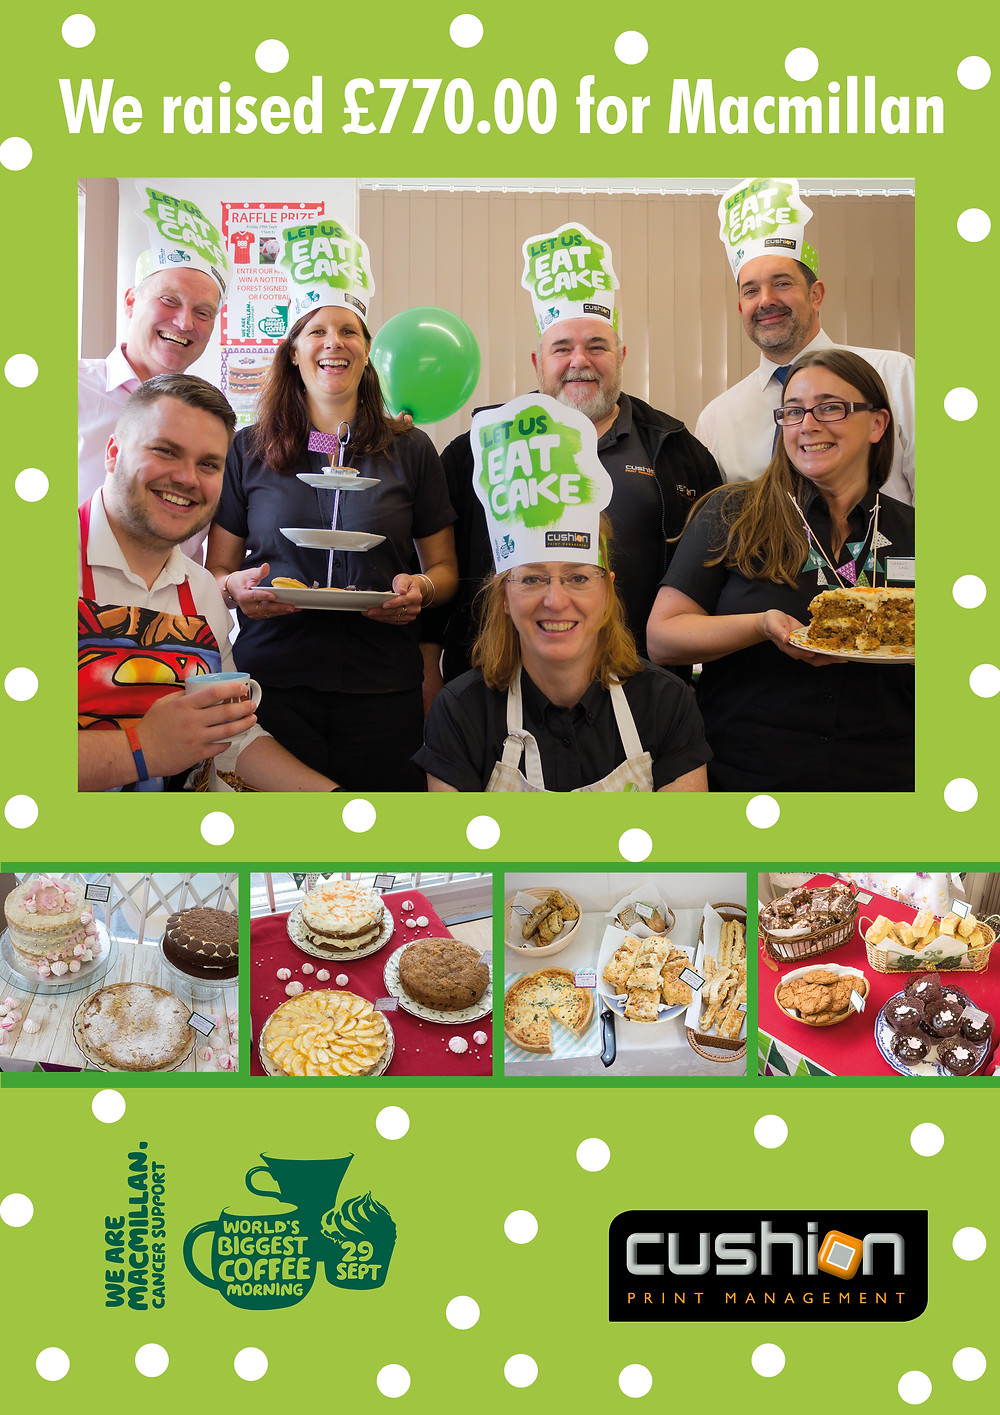 We Raised £770.00 In Total For Macmillan Cancer Support -  Smashing Last Year's Fund Raising